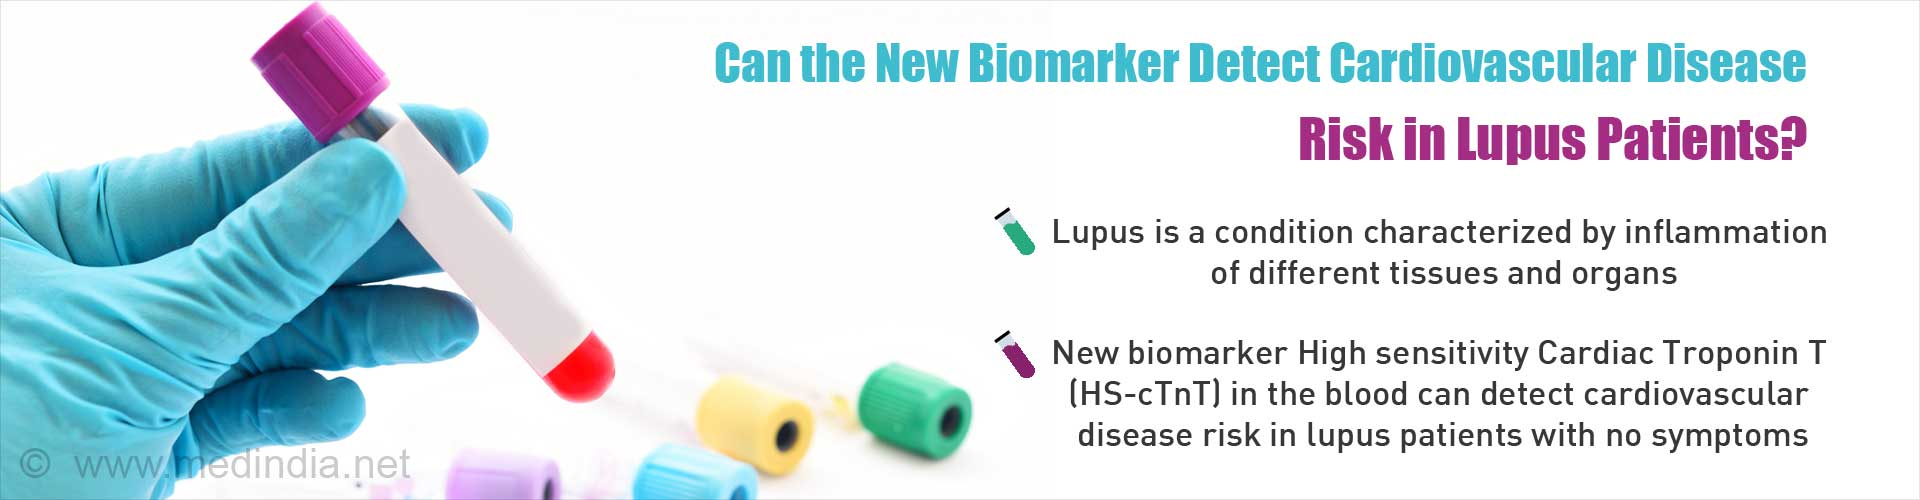 New Biomarker Detects Heart Disease Risk in Lupus Patients